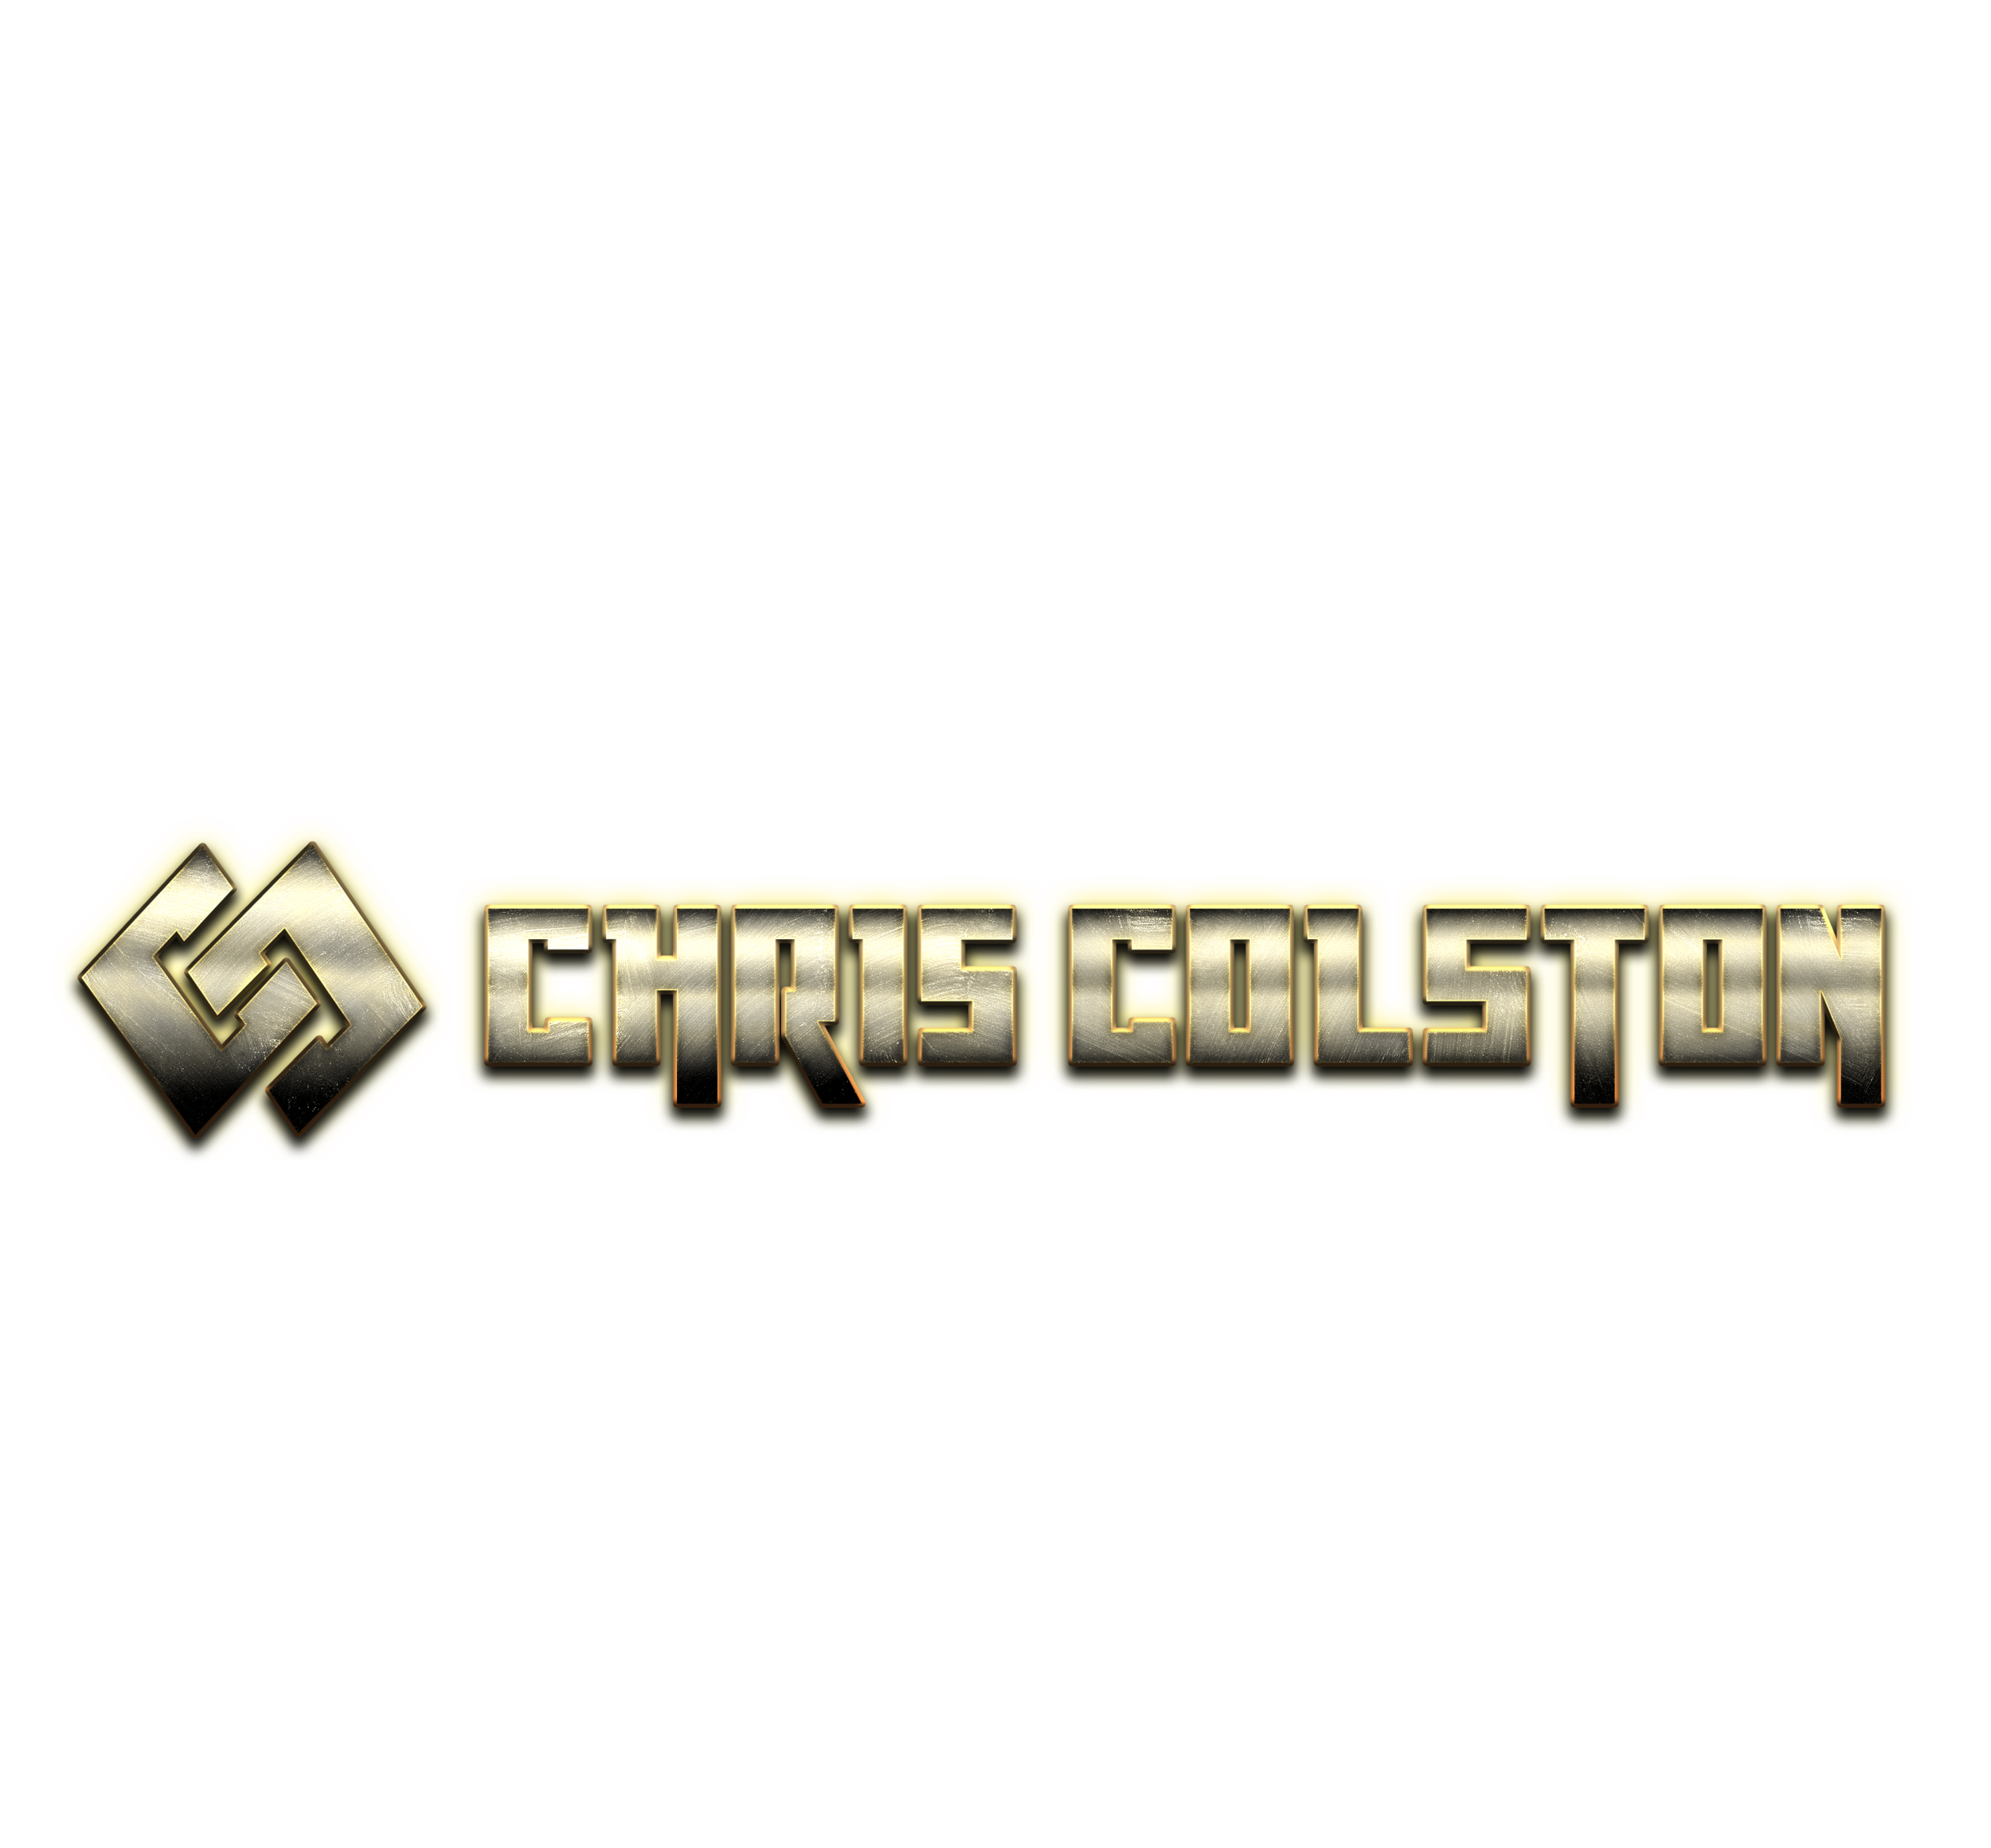 Chris Colston - Logo 2019 - Single Line.png